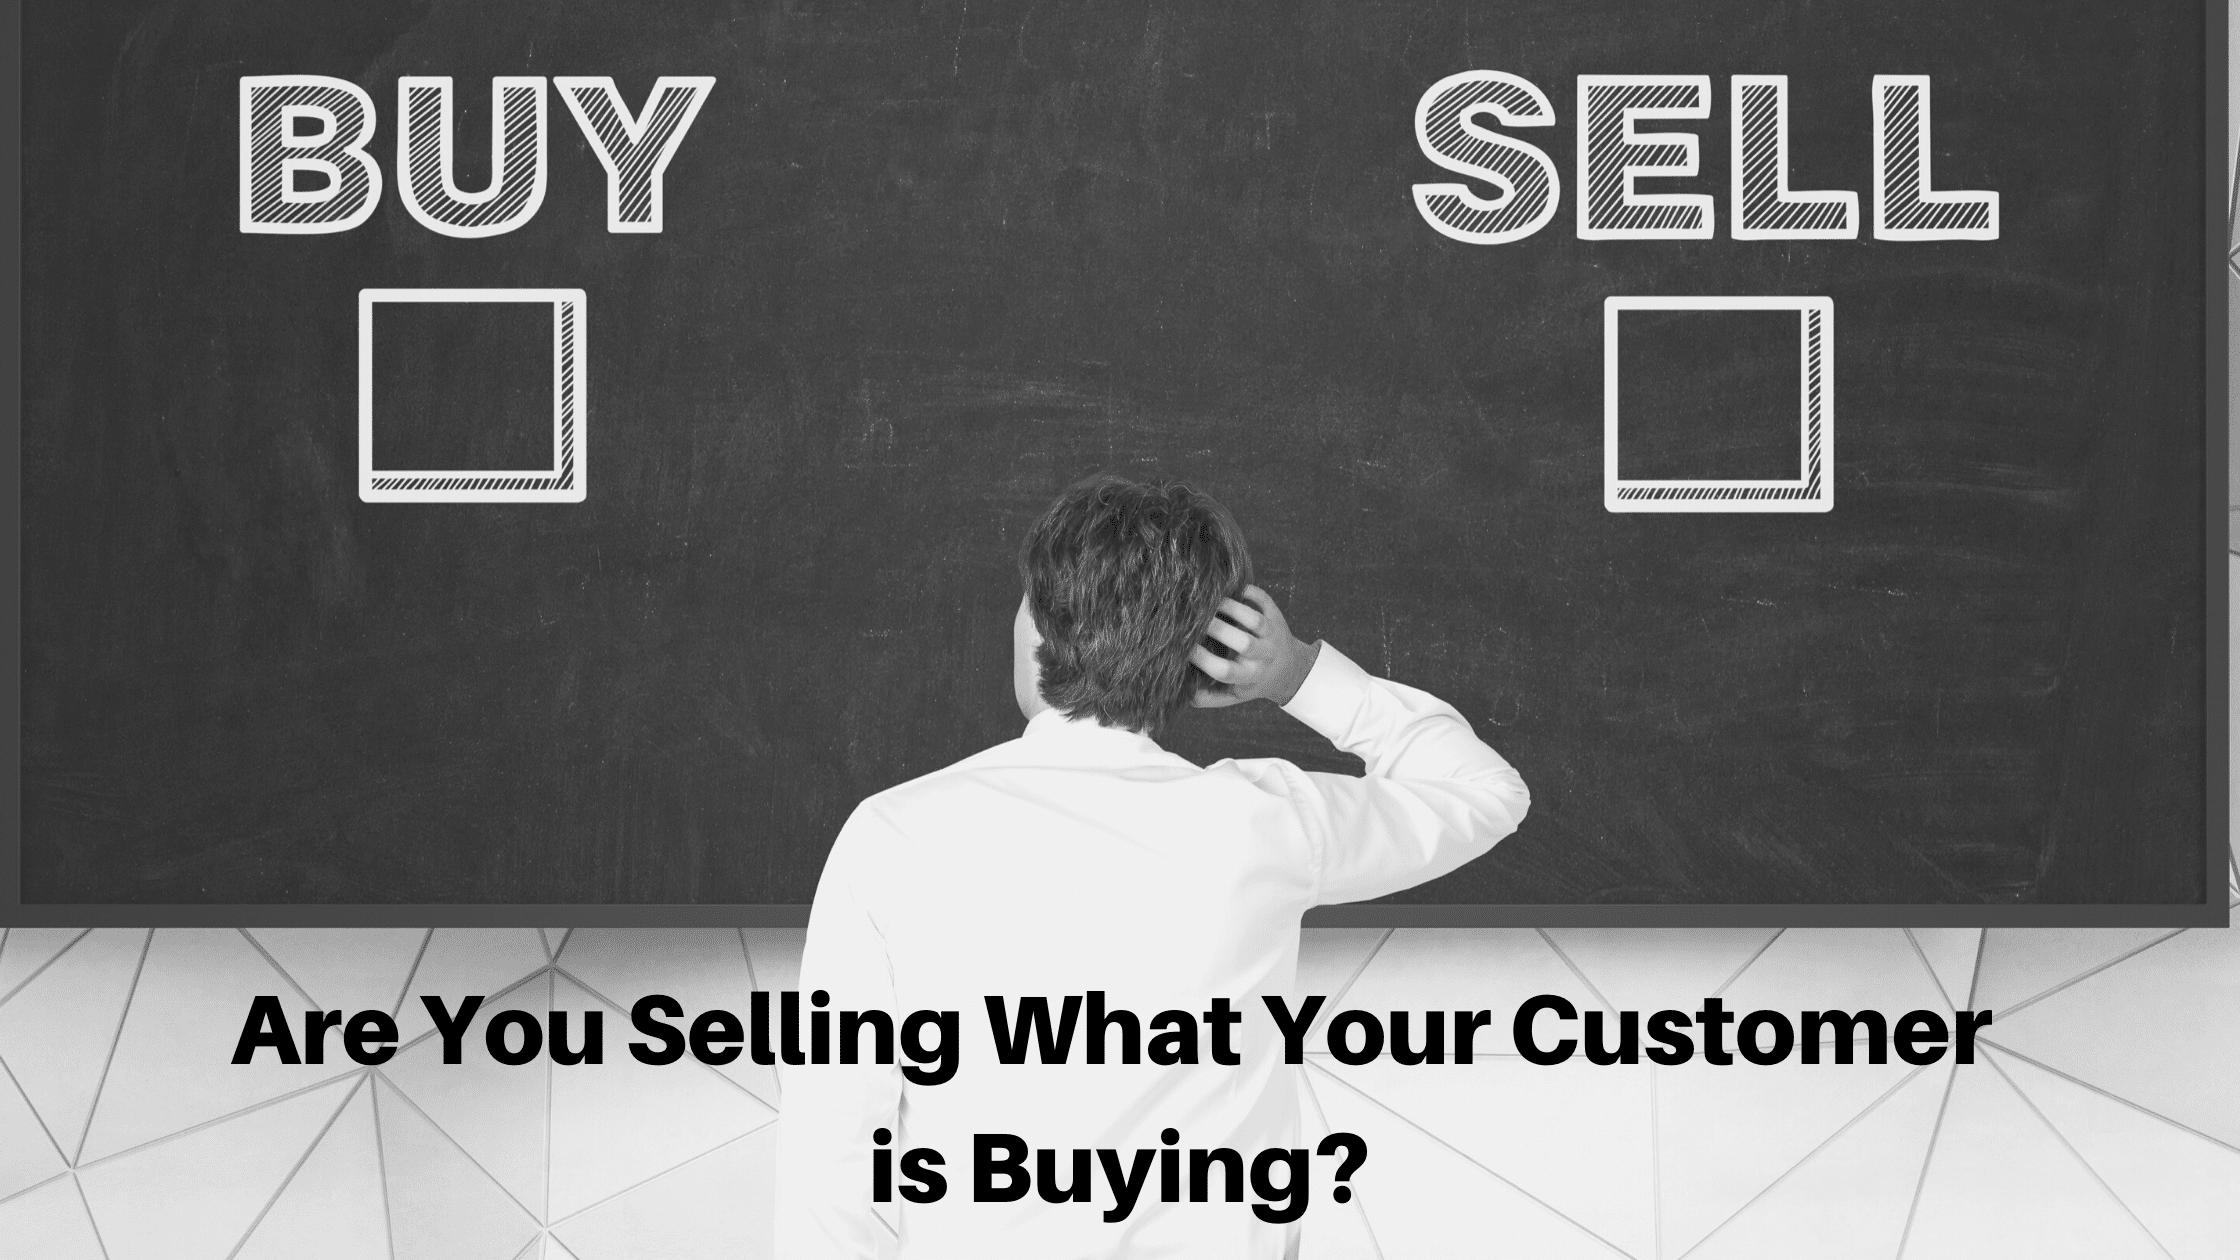 Are You Selling What Your Customer is Buying?